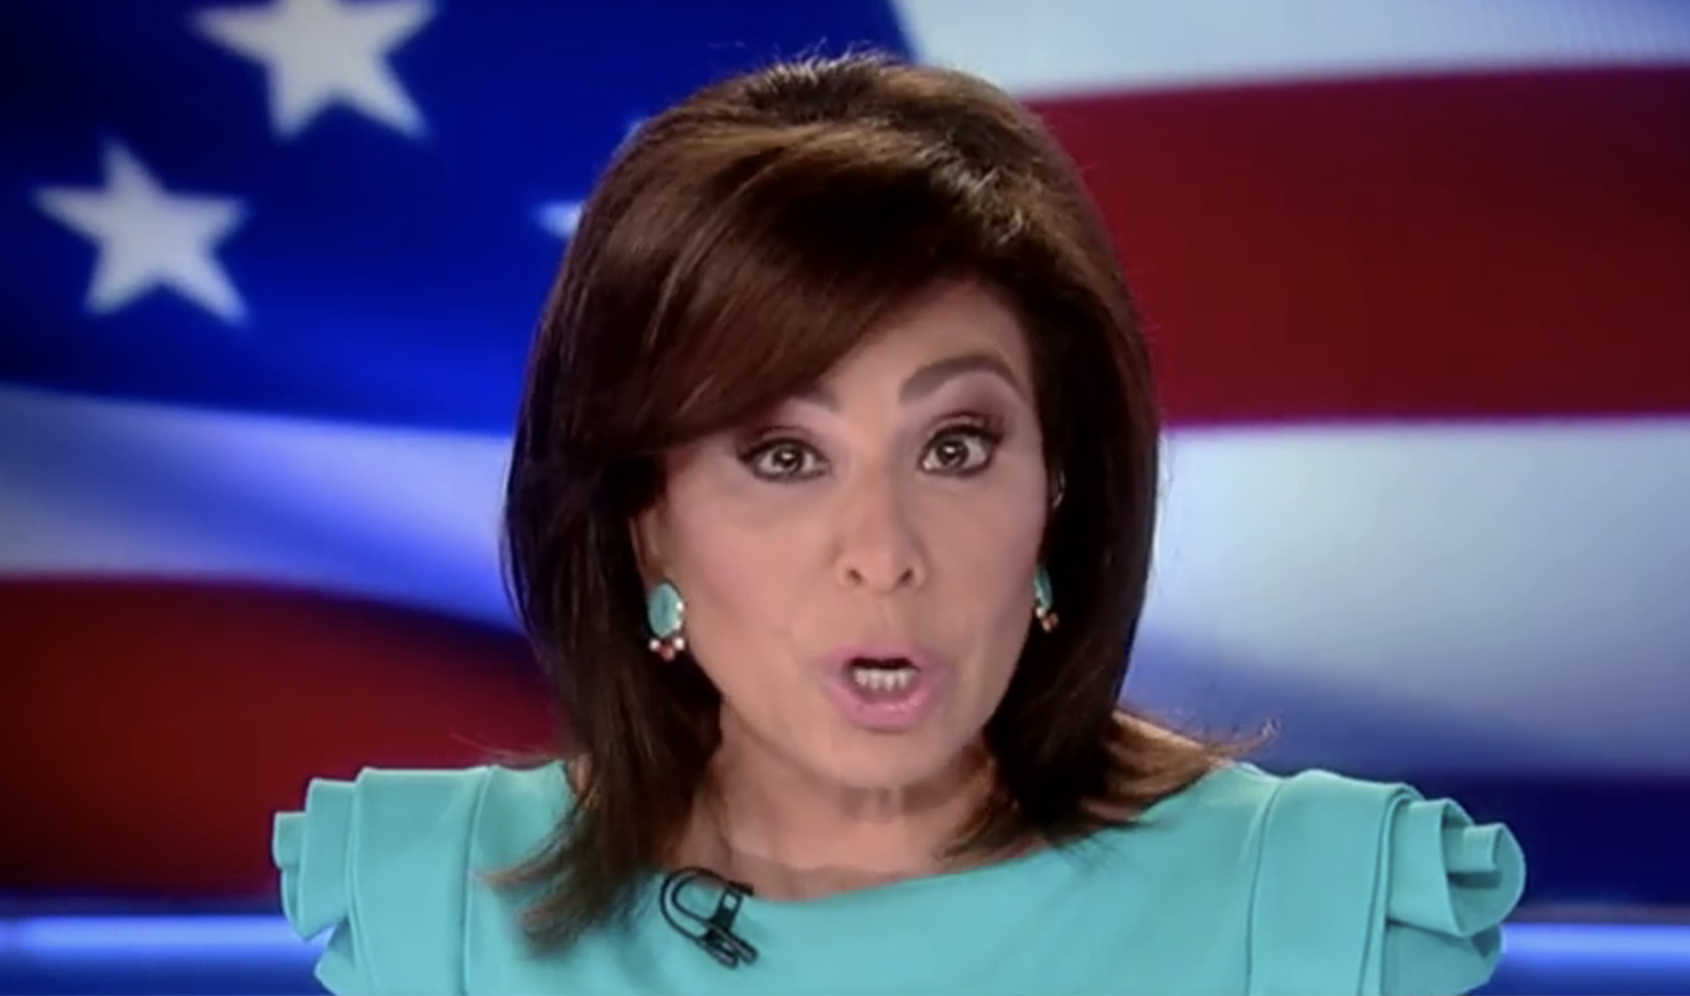 Jeanine Pirro Whines About Fox News On Hot Mic: 'I'm Not Going To Get Fired'